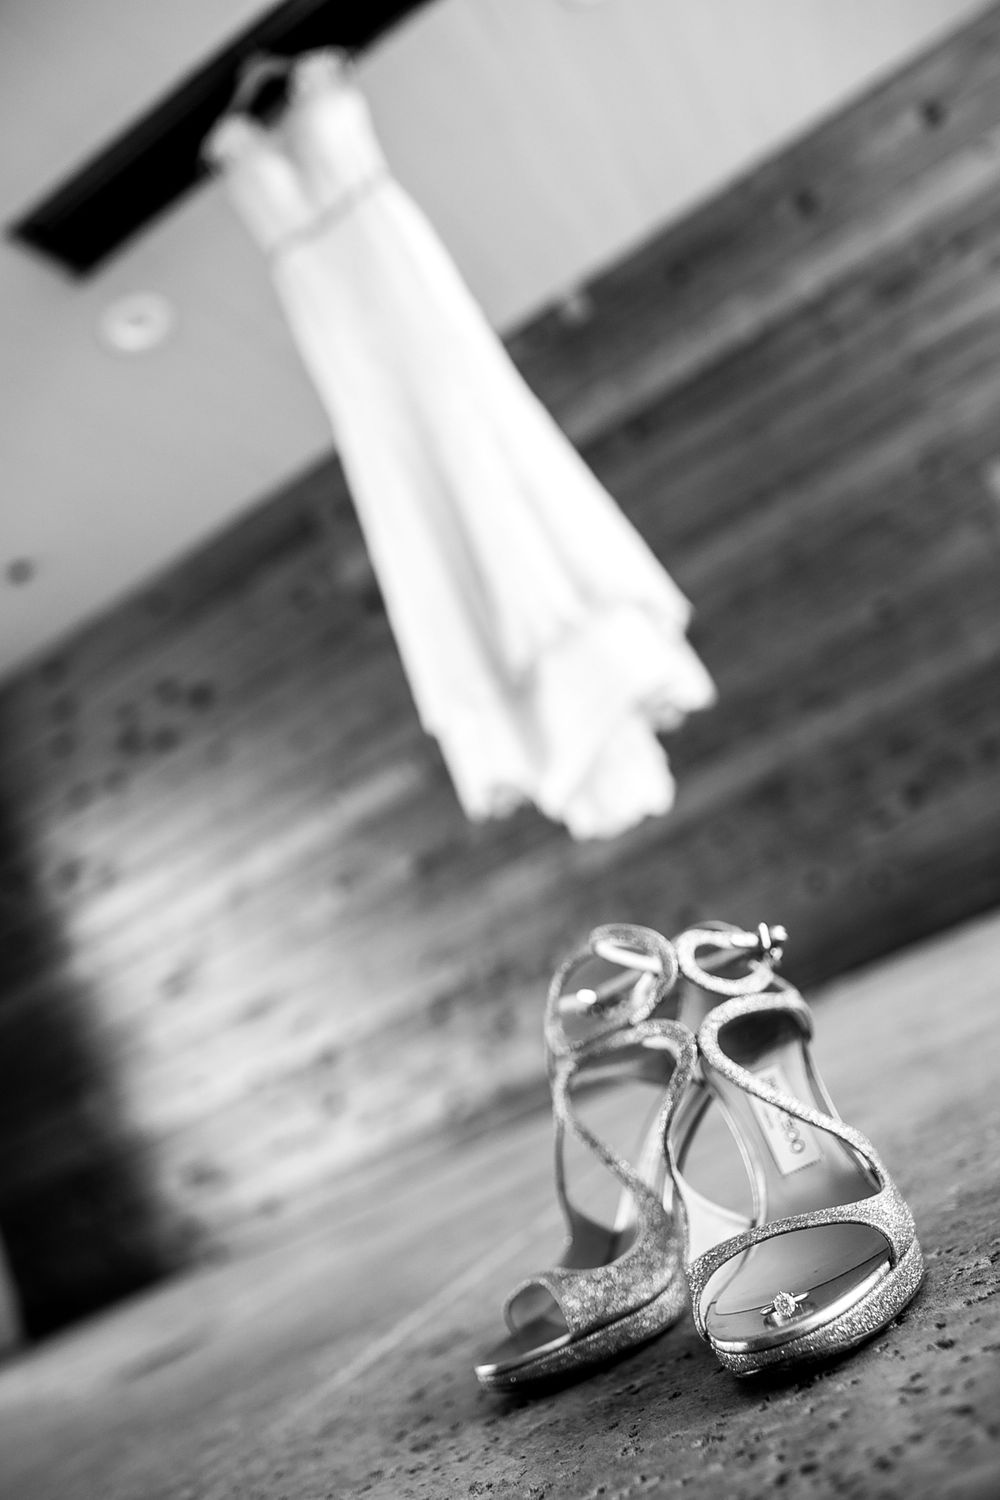 rebecca skidgel photography crow canyon country club danville wedding photographer bride getting details dress hanging